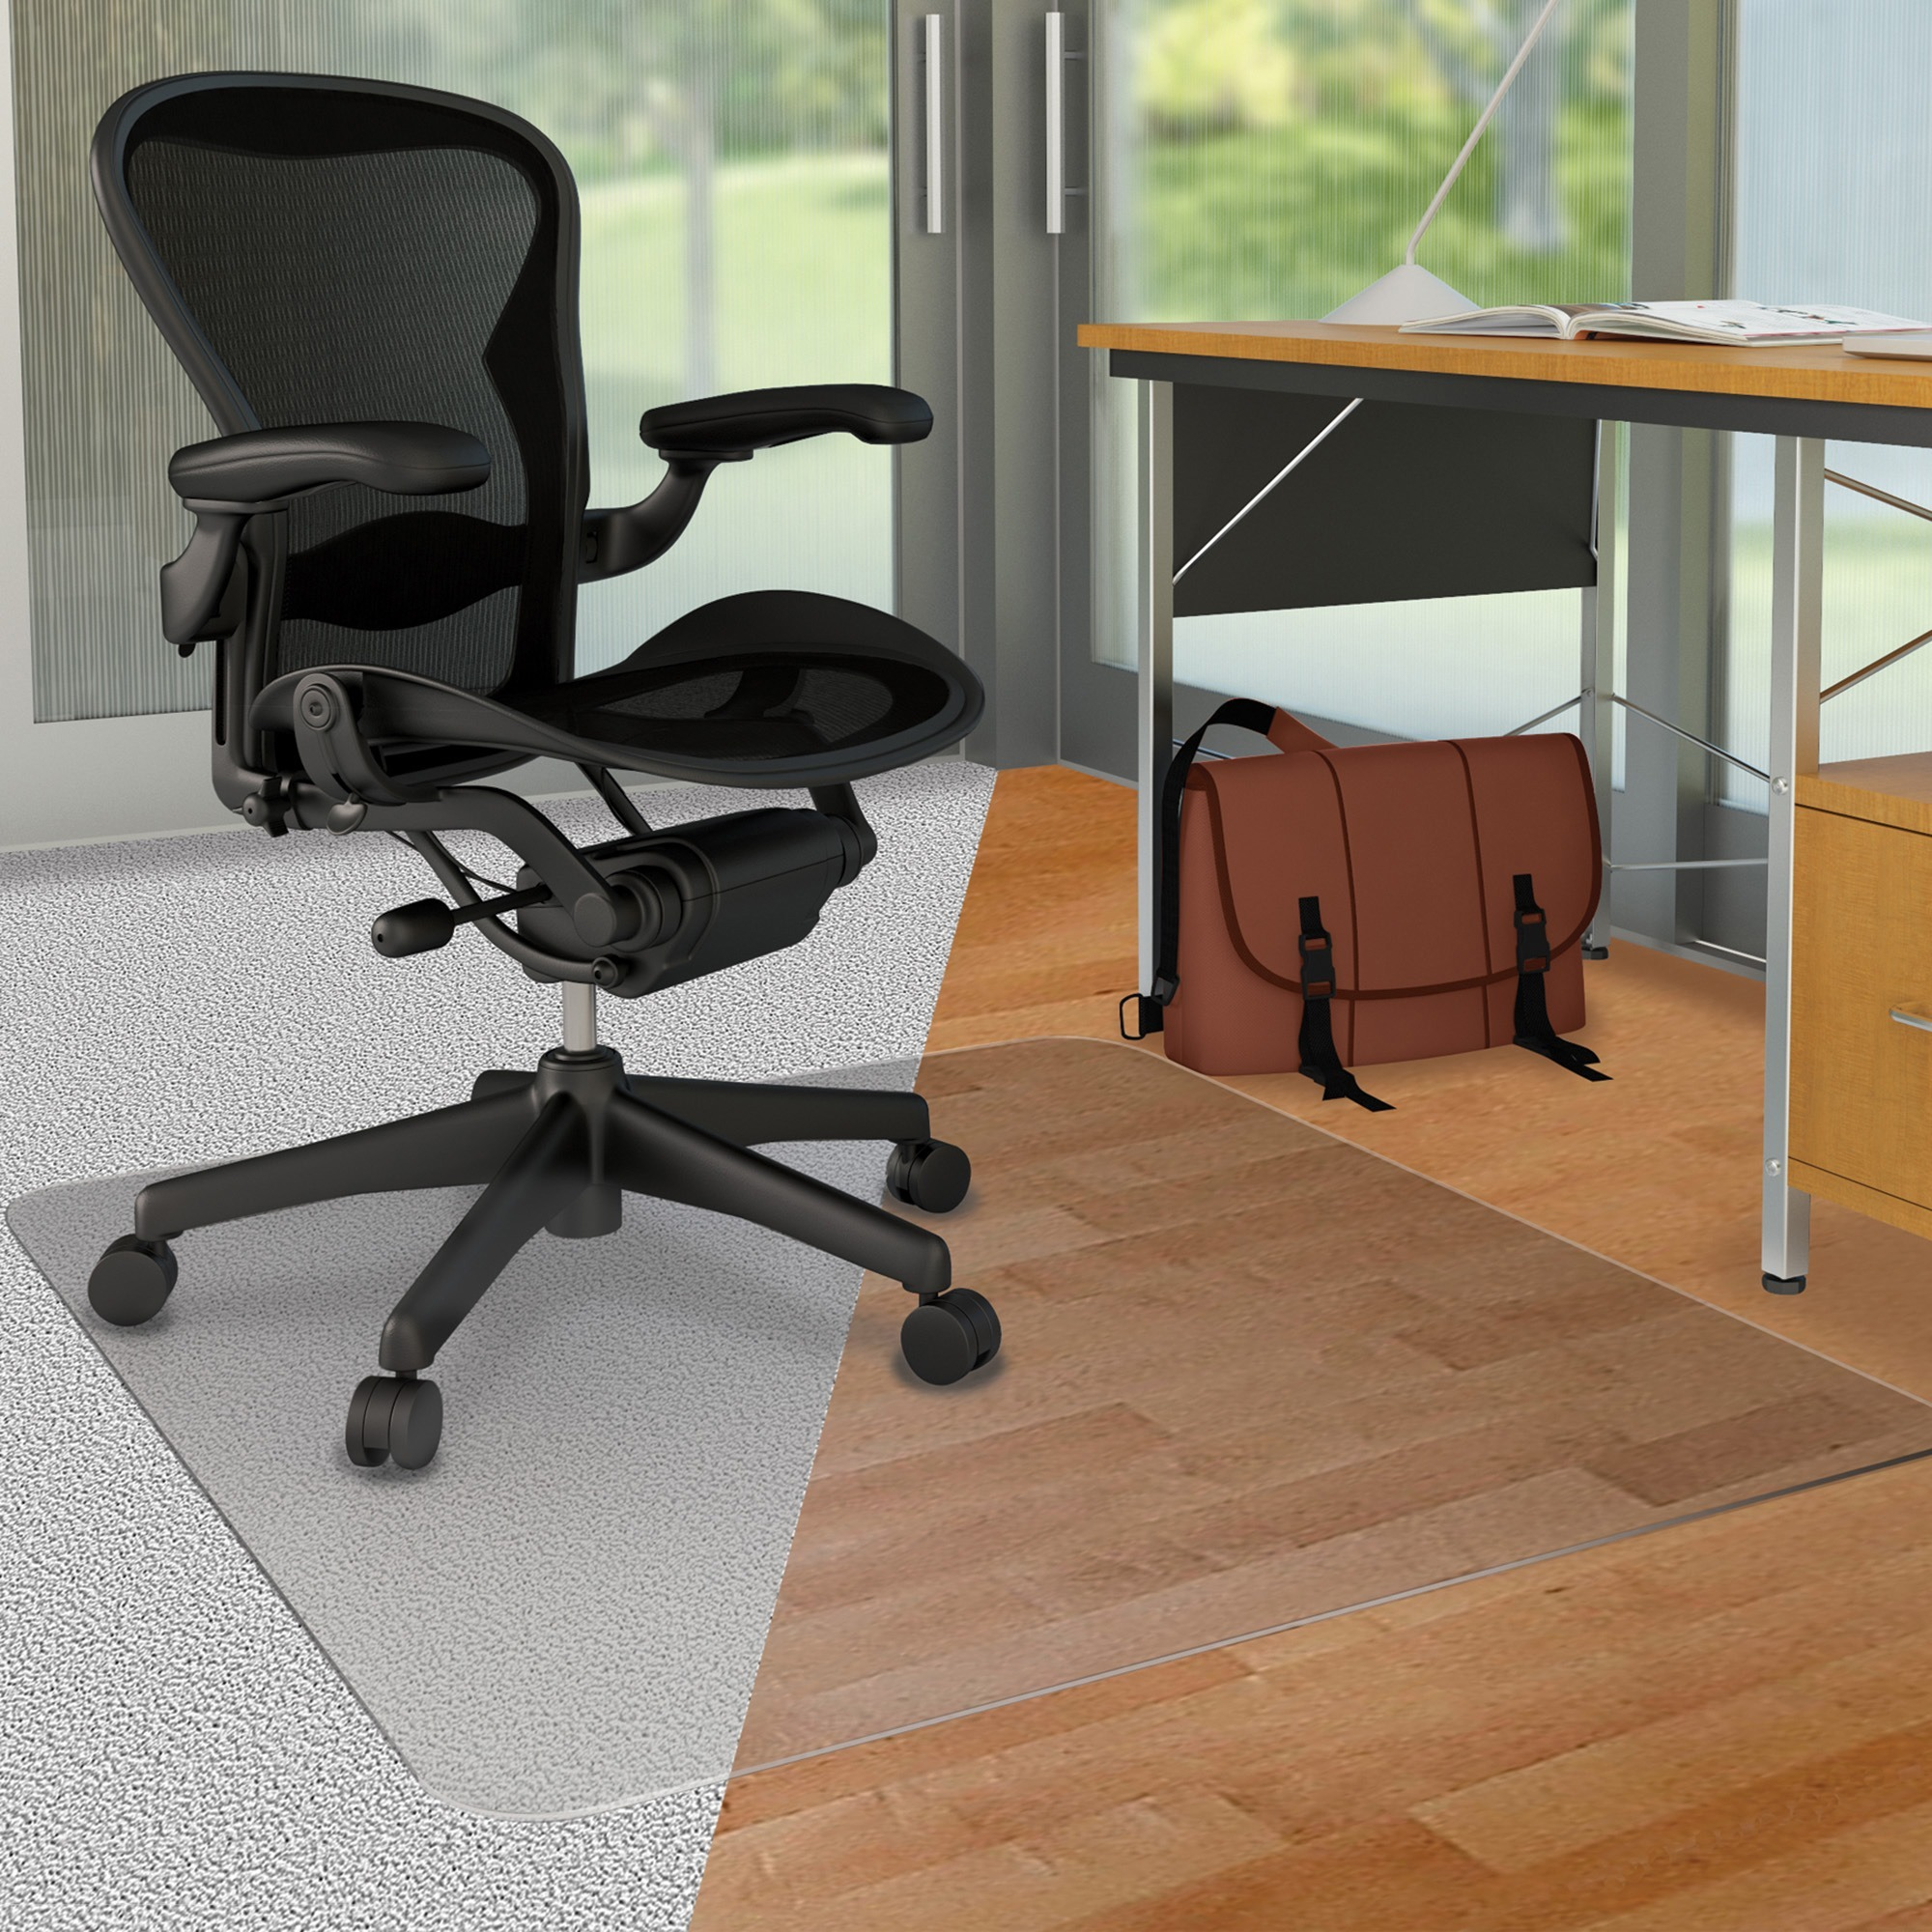 home mat pvc pictures tatami computer chair in garden captivating floor protection wooden for office desk carpet wood cushion custom on and pad with mats from steps group